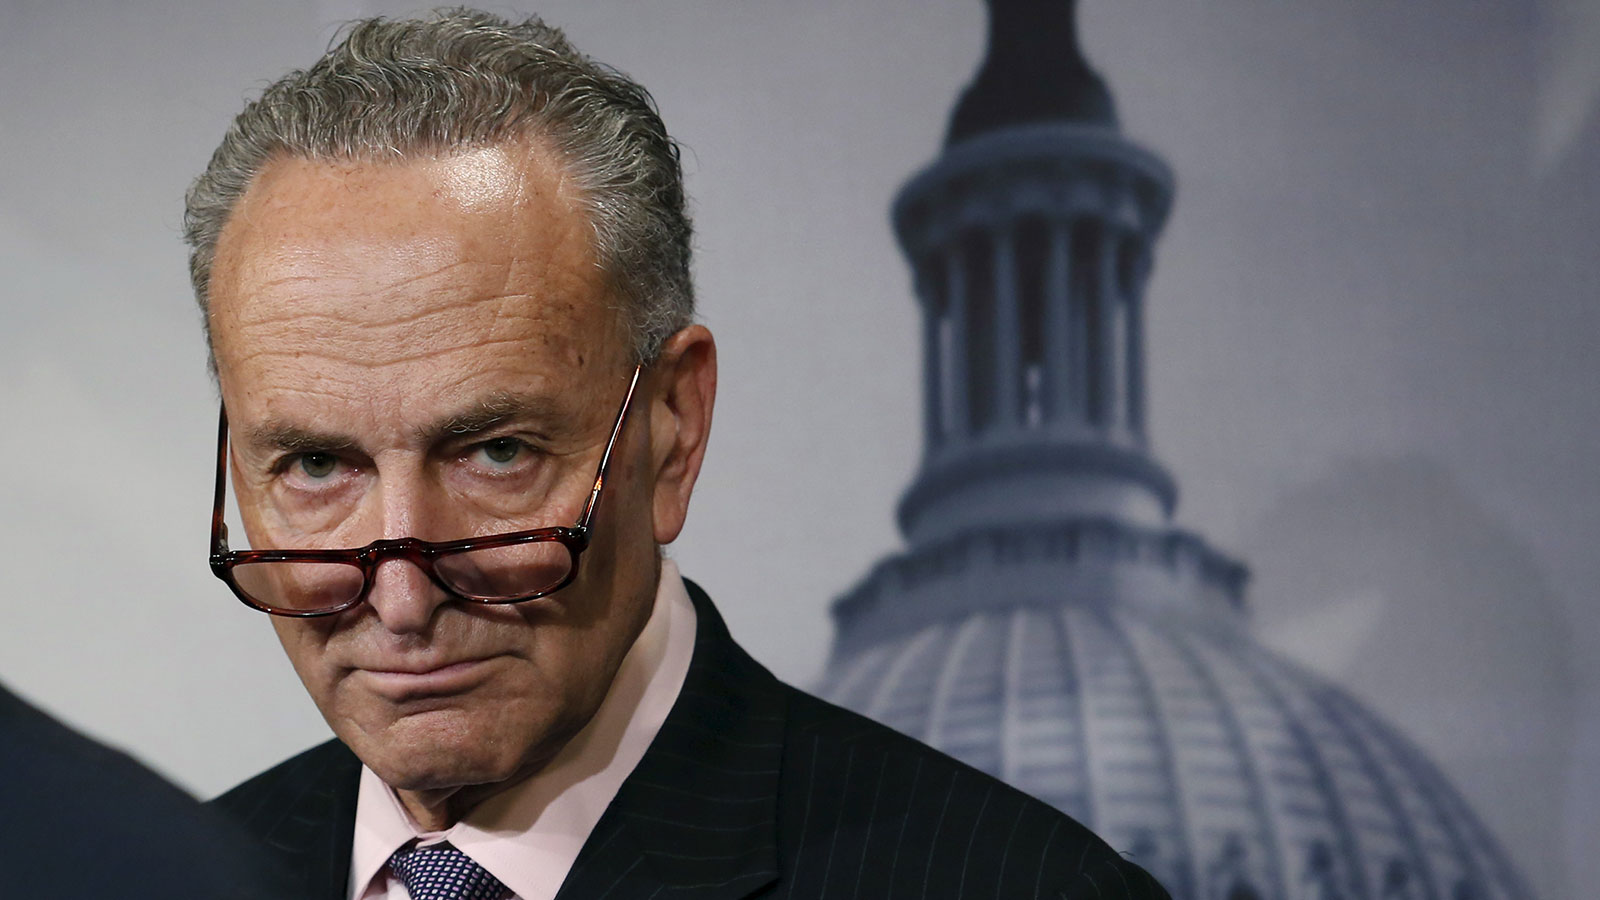 Rubio Says Schumer Threw 'Temper Tantrum' To Block Intel Briefing On Election Interference